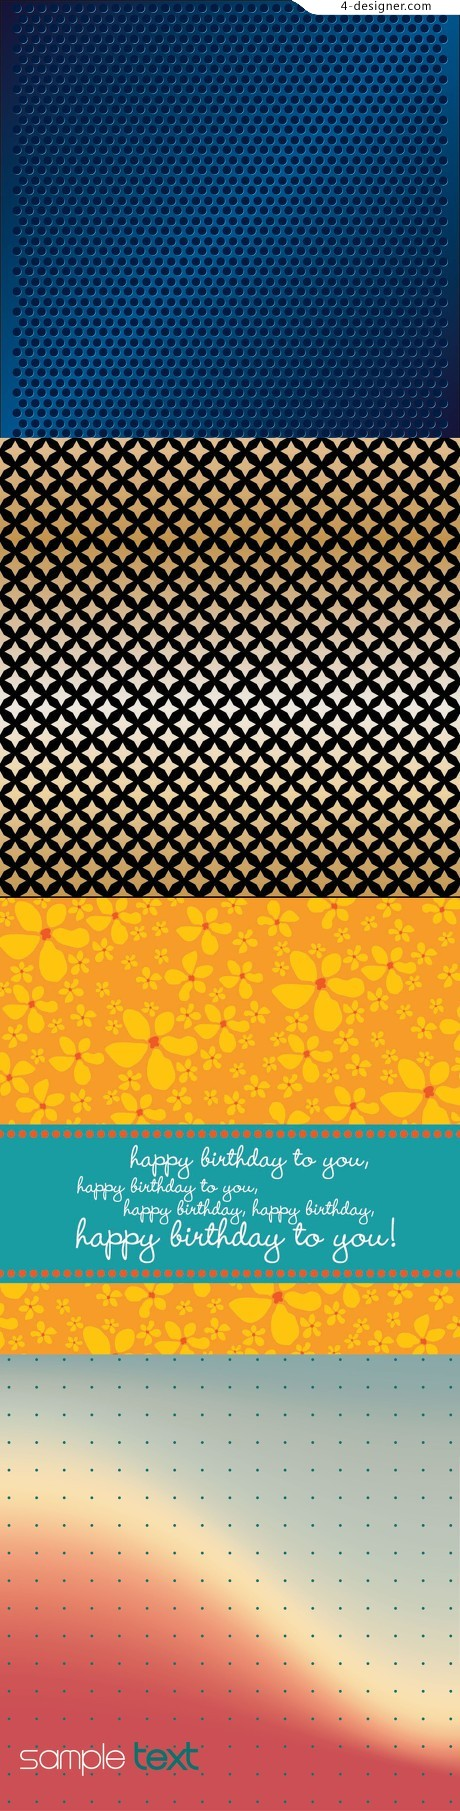 Shading background pattern vector material